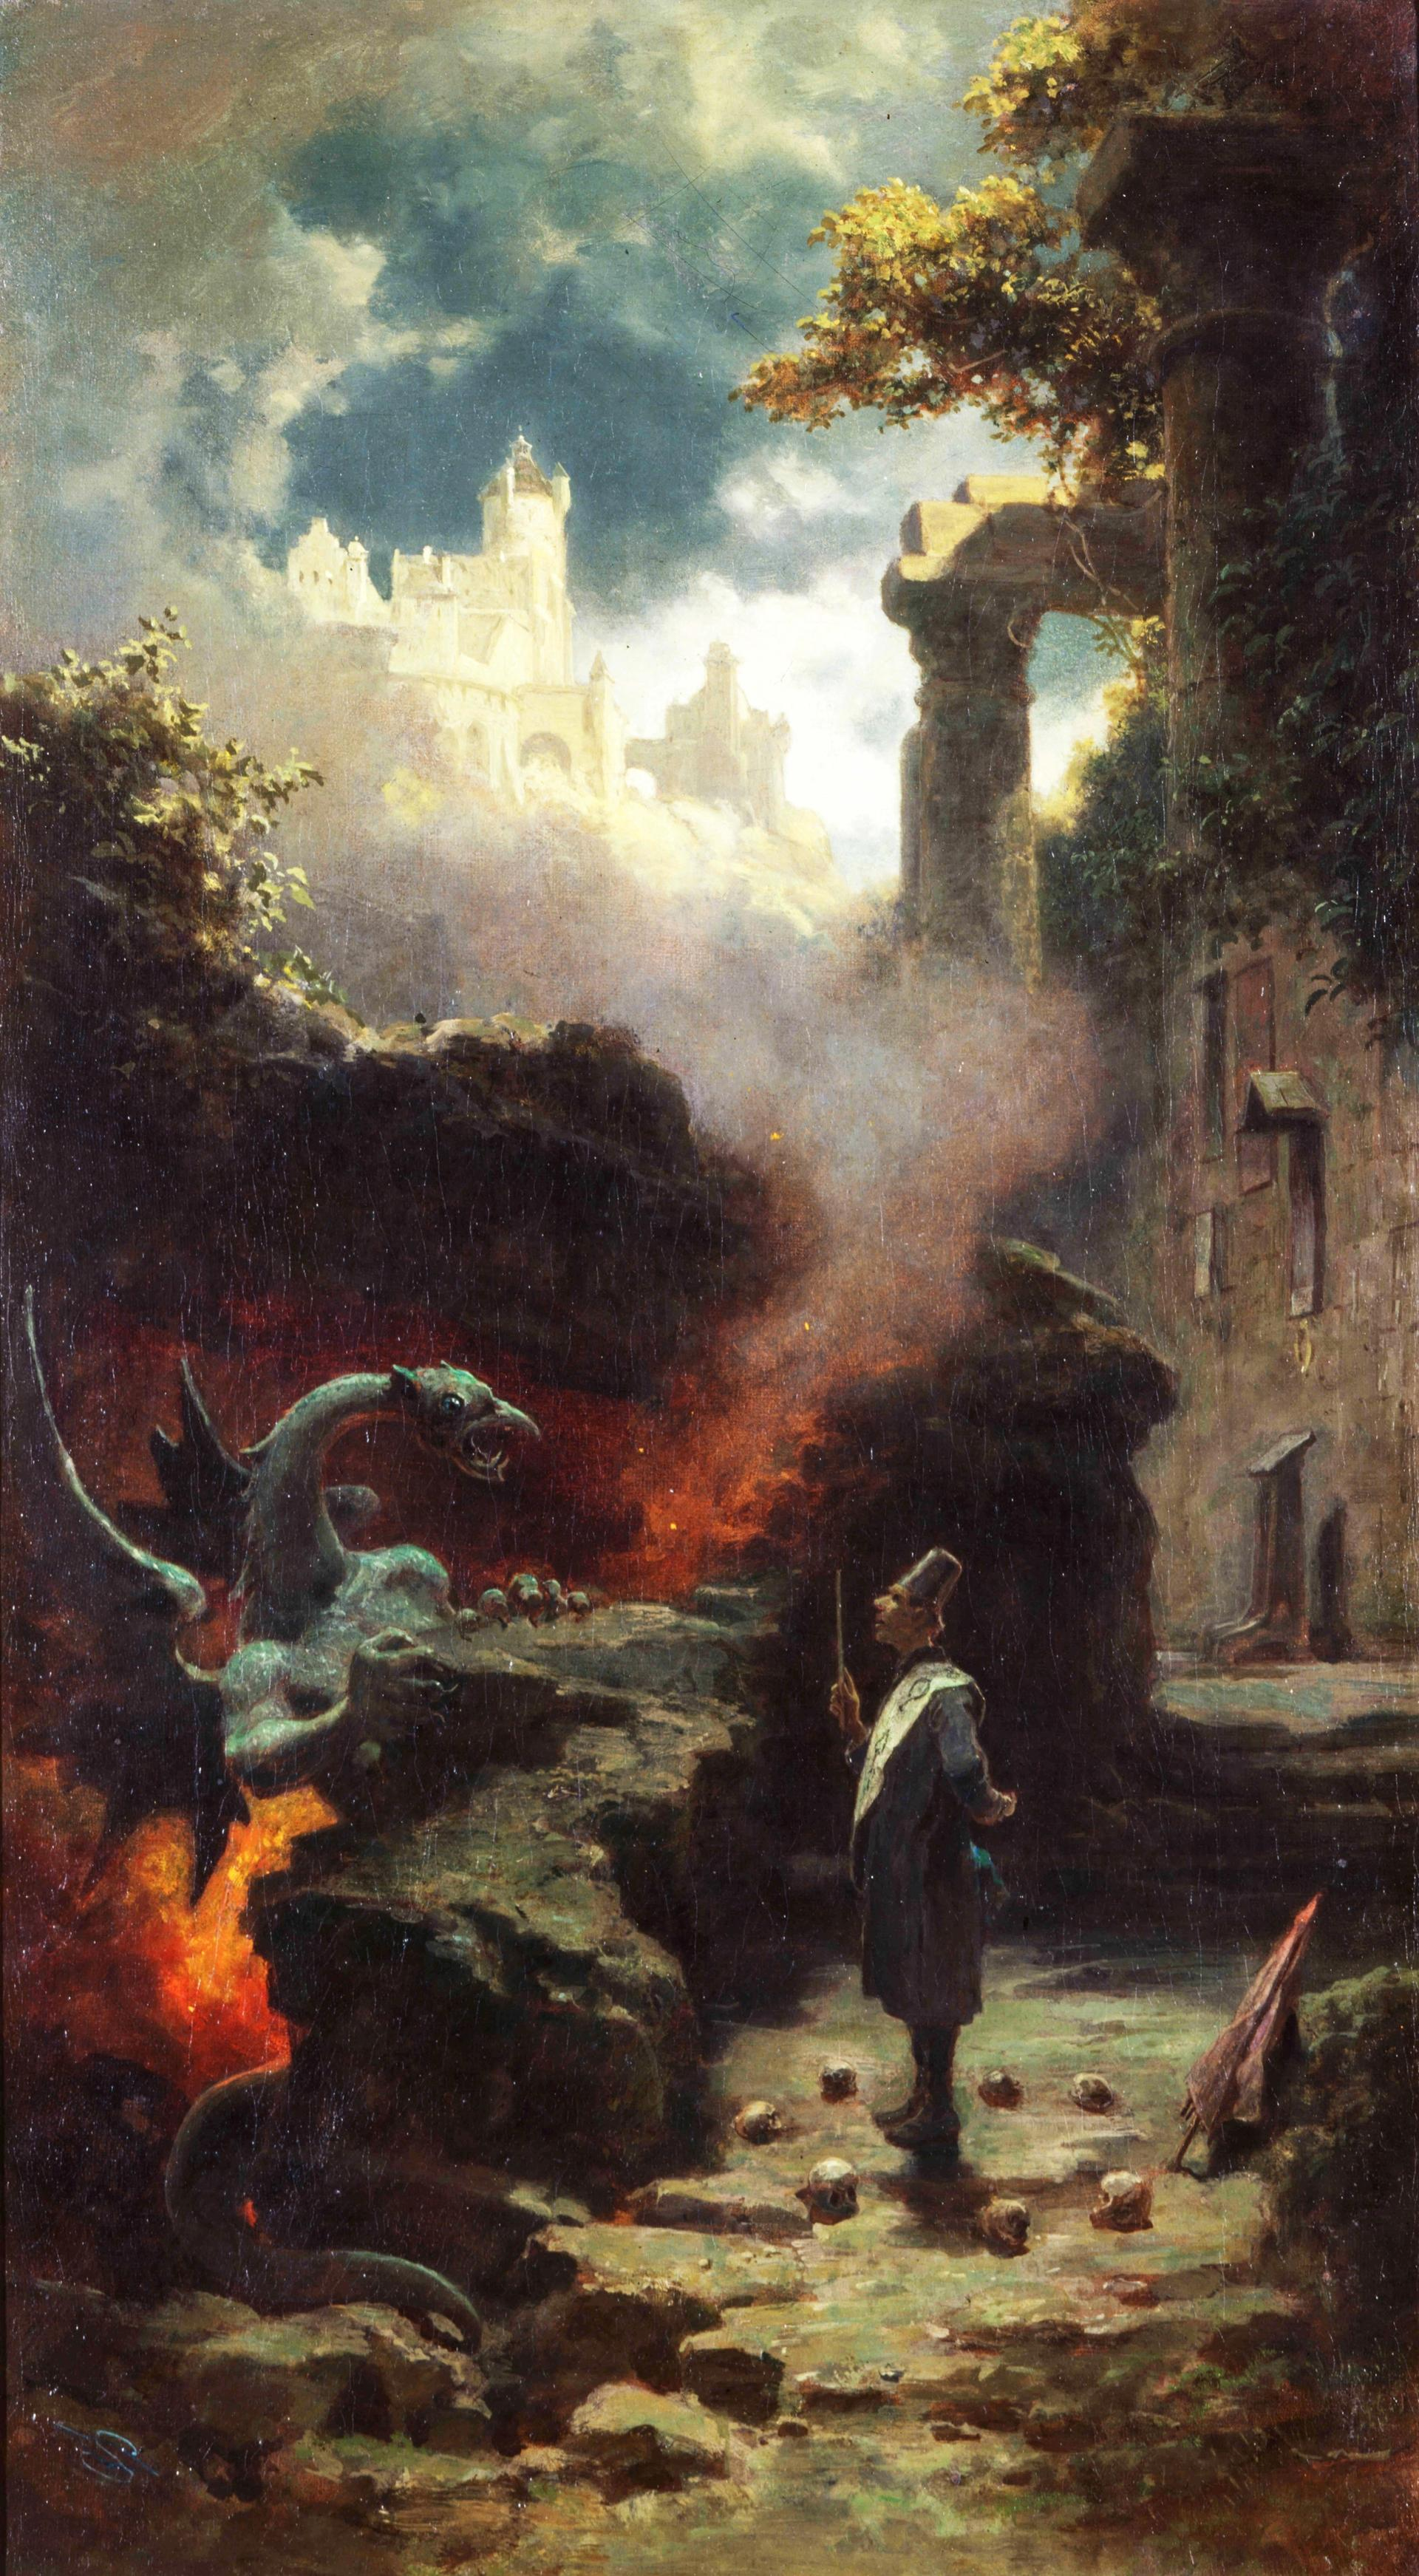 Carl Spitzweg's Der Hexenmeister has been returned to the heirs of Leo Bendel